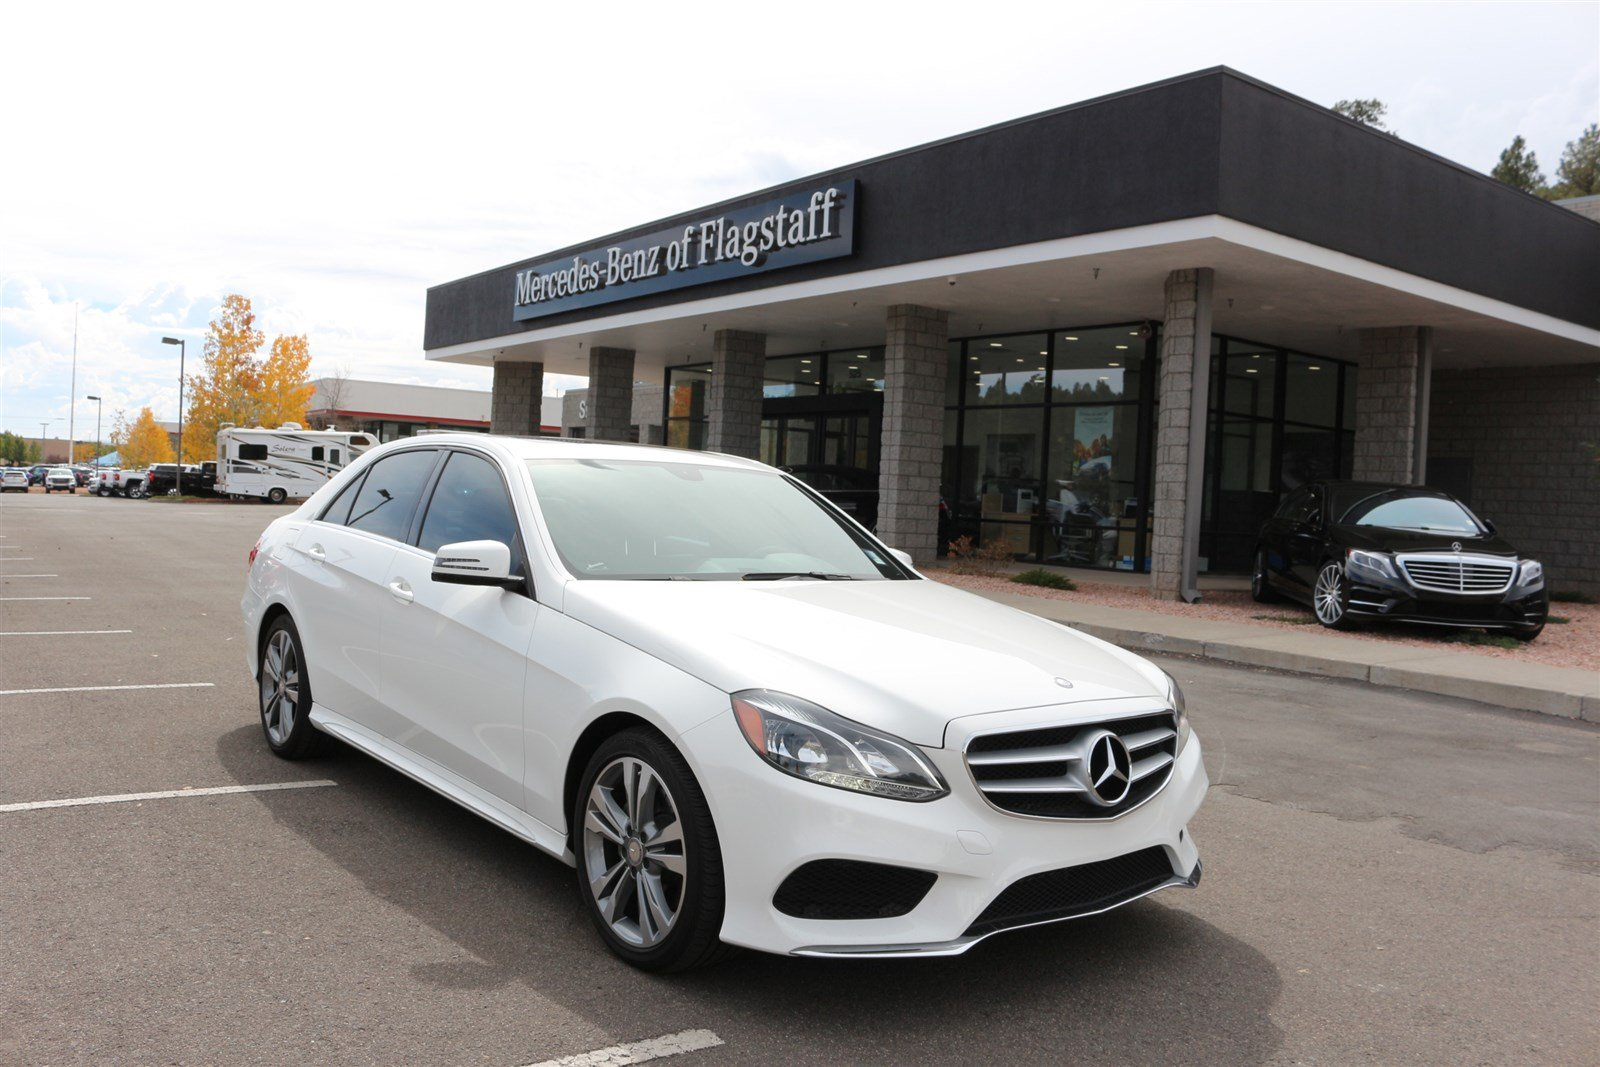 Certified pre owned 2014 mercedes benz e class e350 sport for Mercedes benz of flagstaff